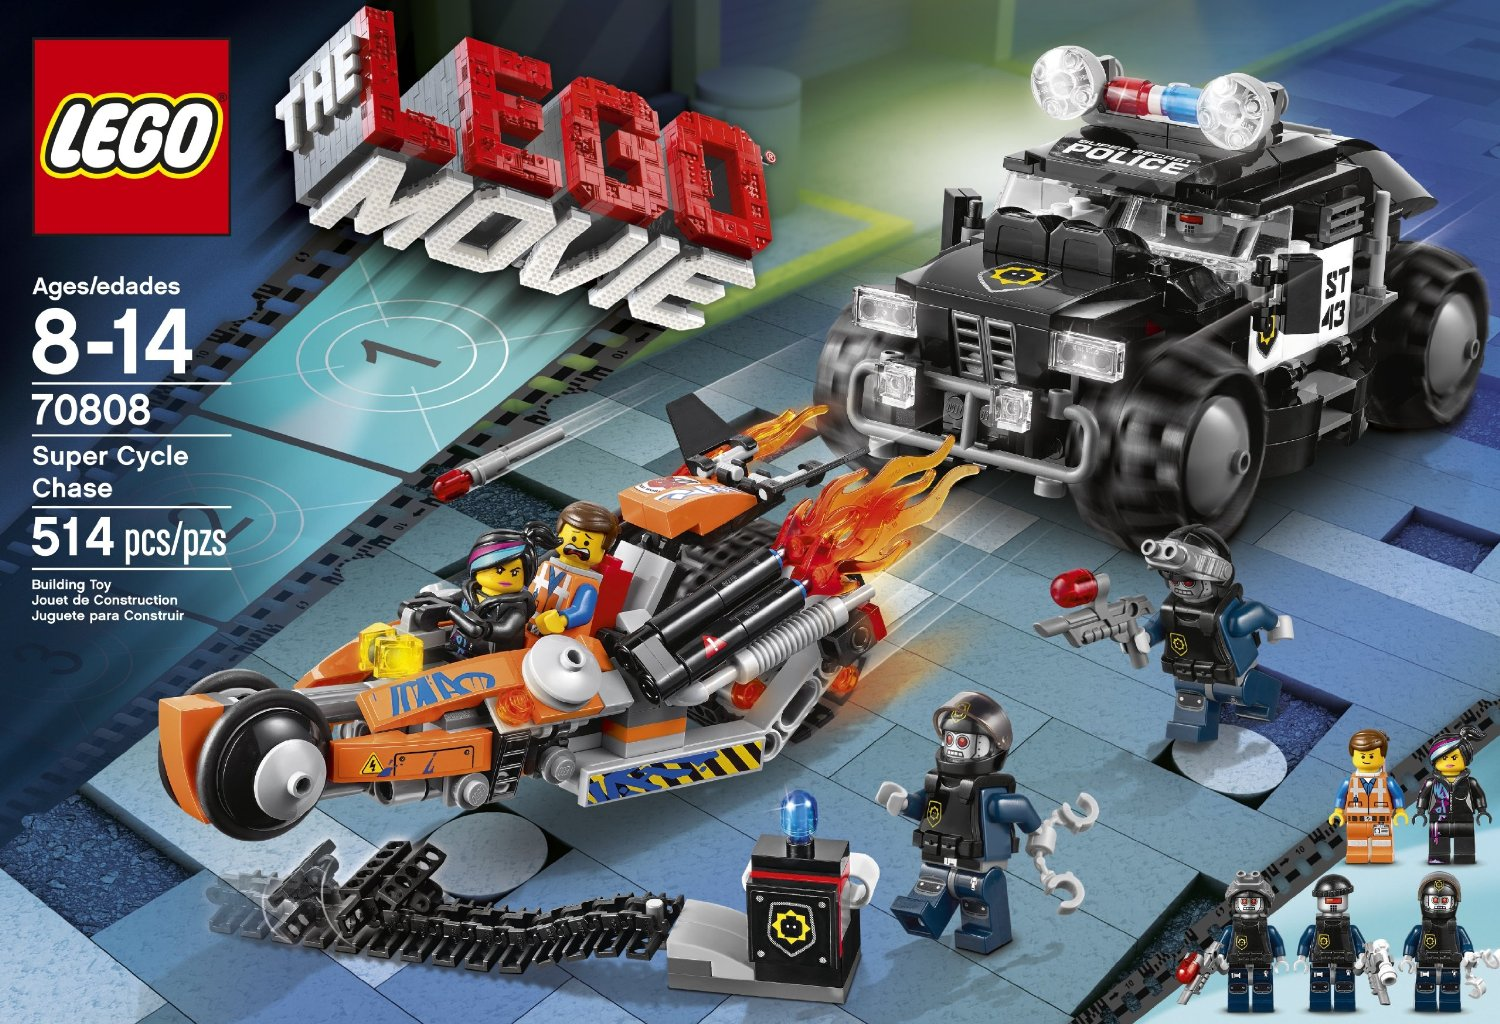 70808 Lego Movie Poursuite Hellobricks Review La Super K1FTlcuJ3